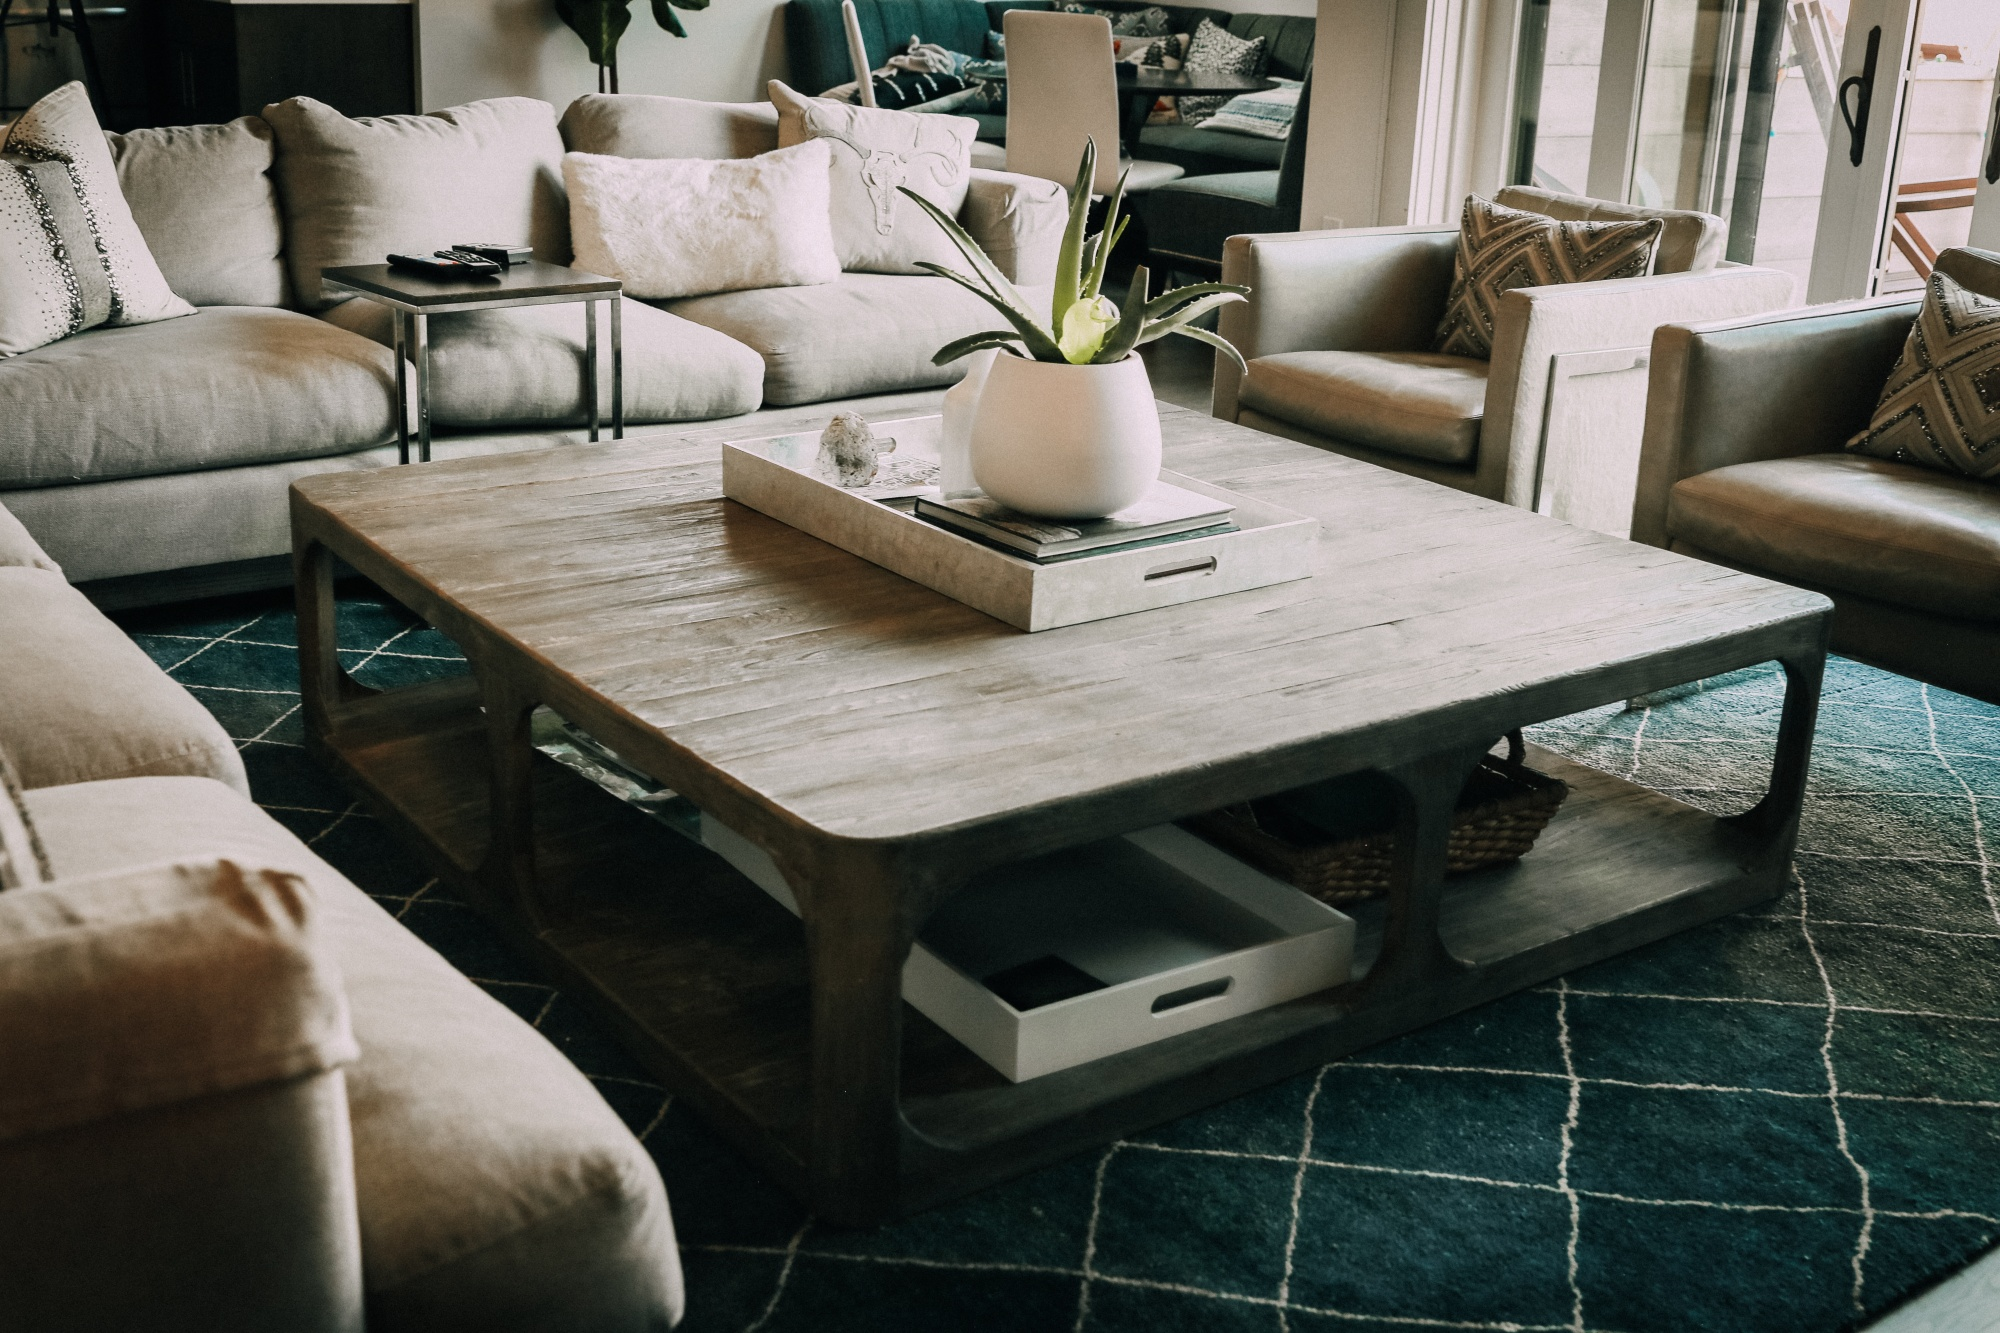 linen sofas, large gray wood coffee table, white vases from west elm, and gray leather club chairs from restoration hardware with cloud9 designs pillows